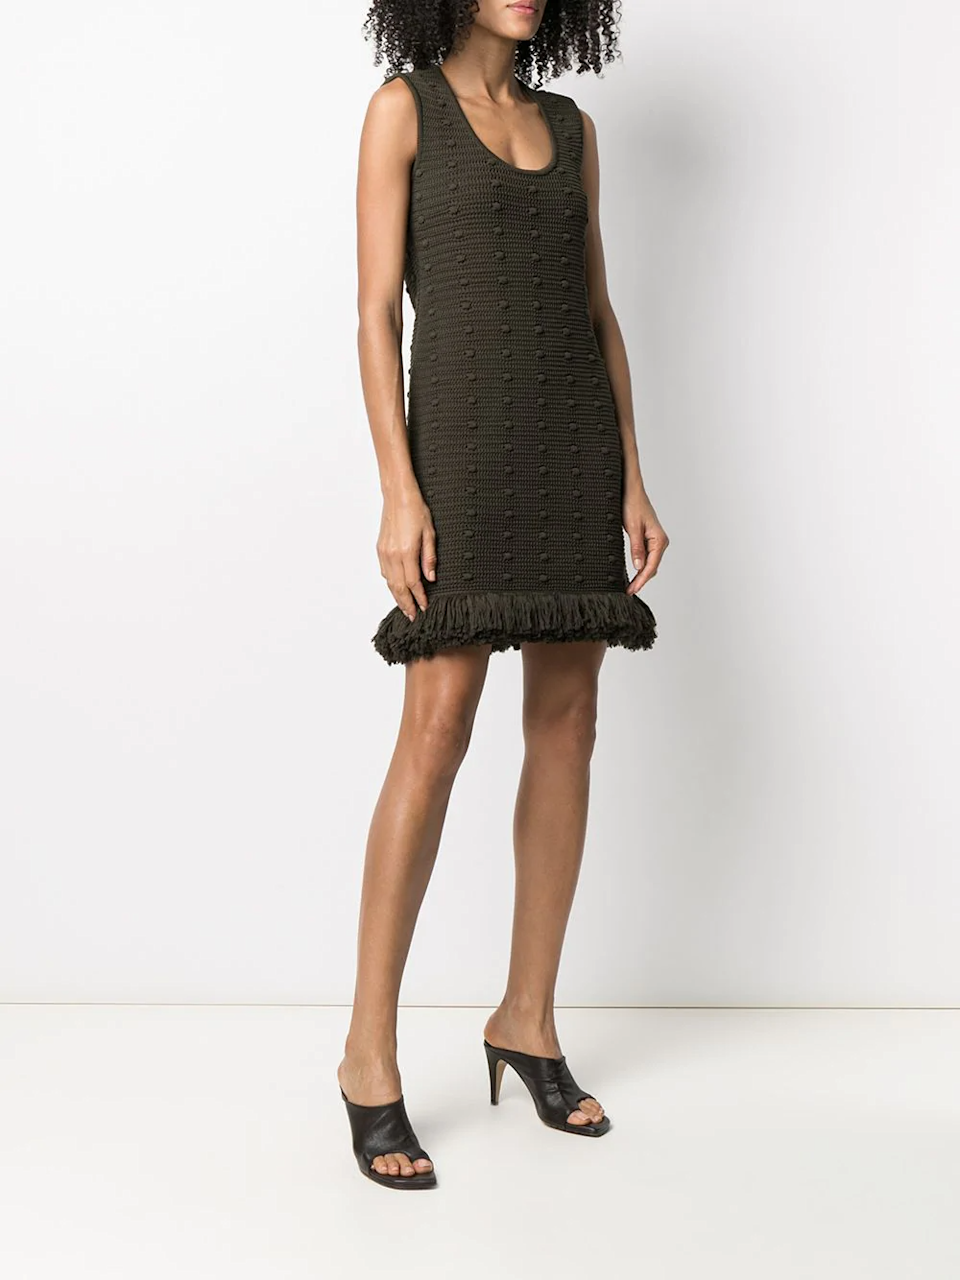 """<h2>The Knit Dress</h2><br>""""After a year of stocking up on loungewear, many people are keen to move beyond sweats and to start enjoying the experience of getting dressed again. With so much time still being spent at home, the knit dress is the ideal transitional piece, maintaining maximum comfort.""""<br><br>-Celenie Seidel, Senior Womenswear Editor at FARFETCH<br><br><strong>Bottega Veneta</strong> Knitted Fringe-Trim Dress, $, available at <a href=""""https://go.skimresources.com/?id=30283X879131&url=https%3A%2F%2Fwww.farfetch.com%2Fshopping%2Fwomen%2Fbottega-veneta-knitted-fringe-trim-dress-item-16143730.aspx%3Fstoreid%3D9671"""" rel=""""nofollow noopener"""" target=""""_blank"""" data-ylk=""""slk:Farfetch"""" class=""""link rapid-noclick-resp"""">Farfetch</a>"""